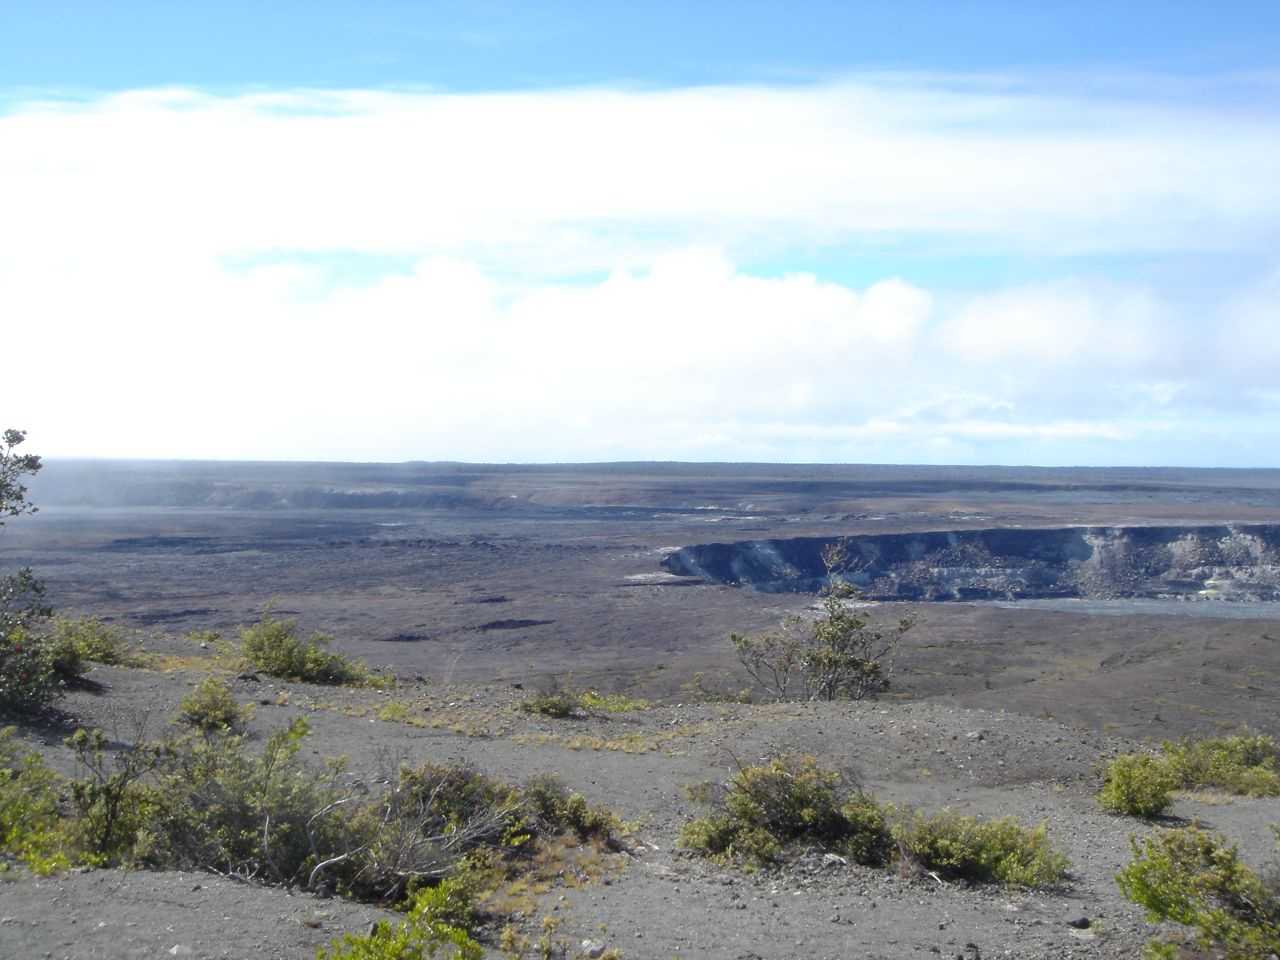 Kilauea caldera in Hawaii